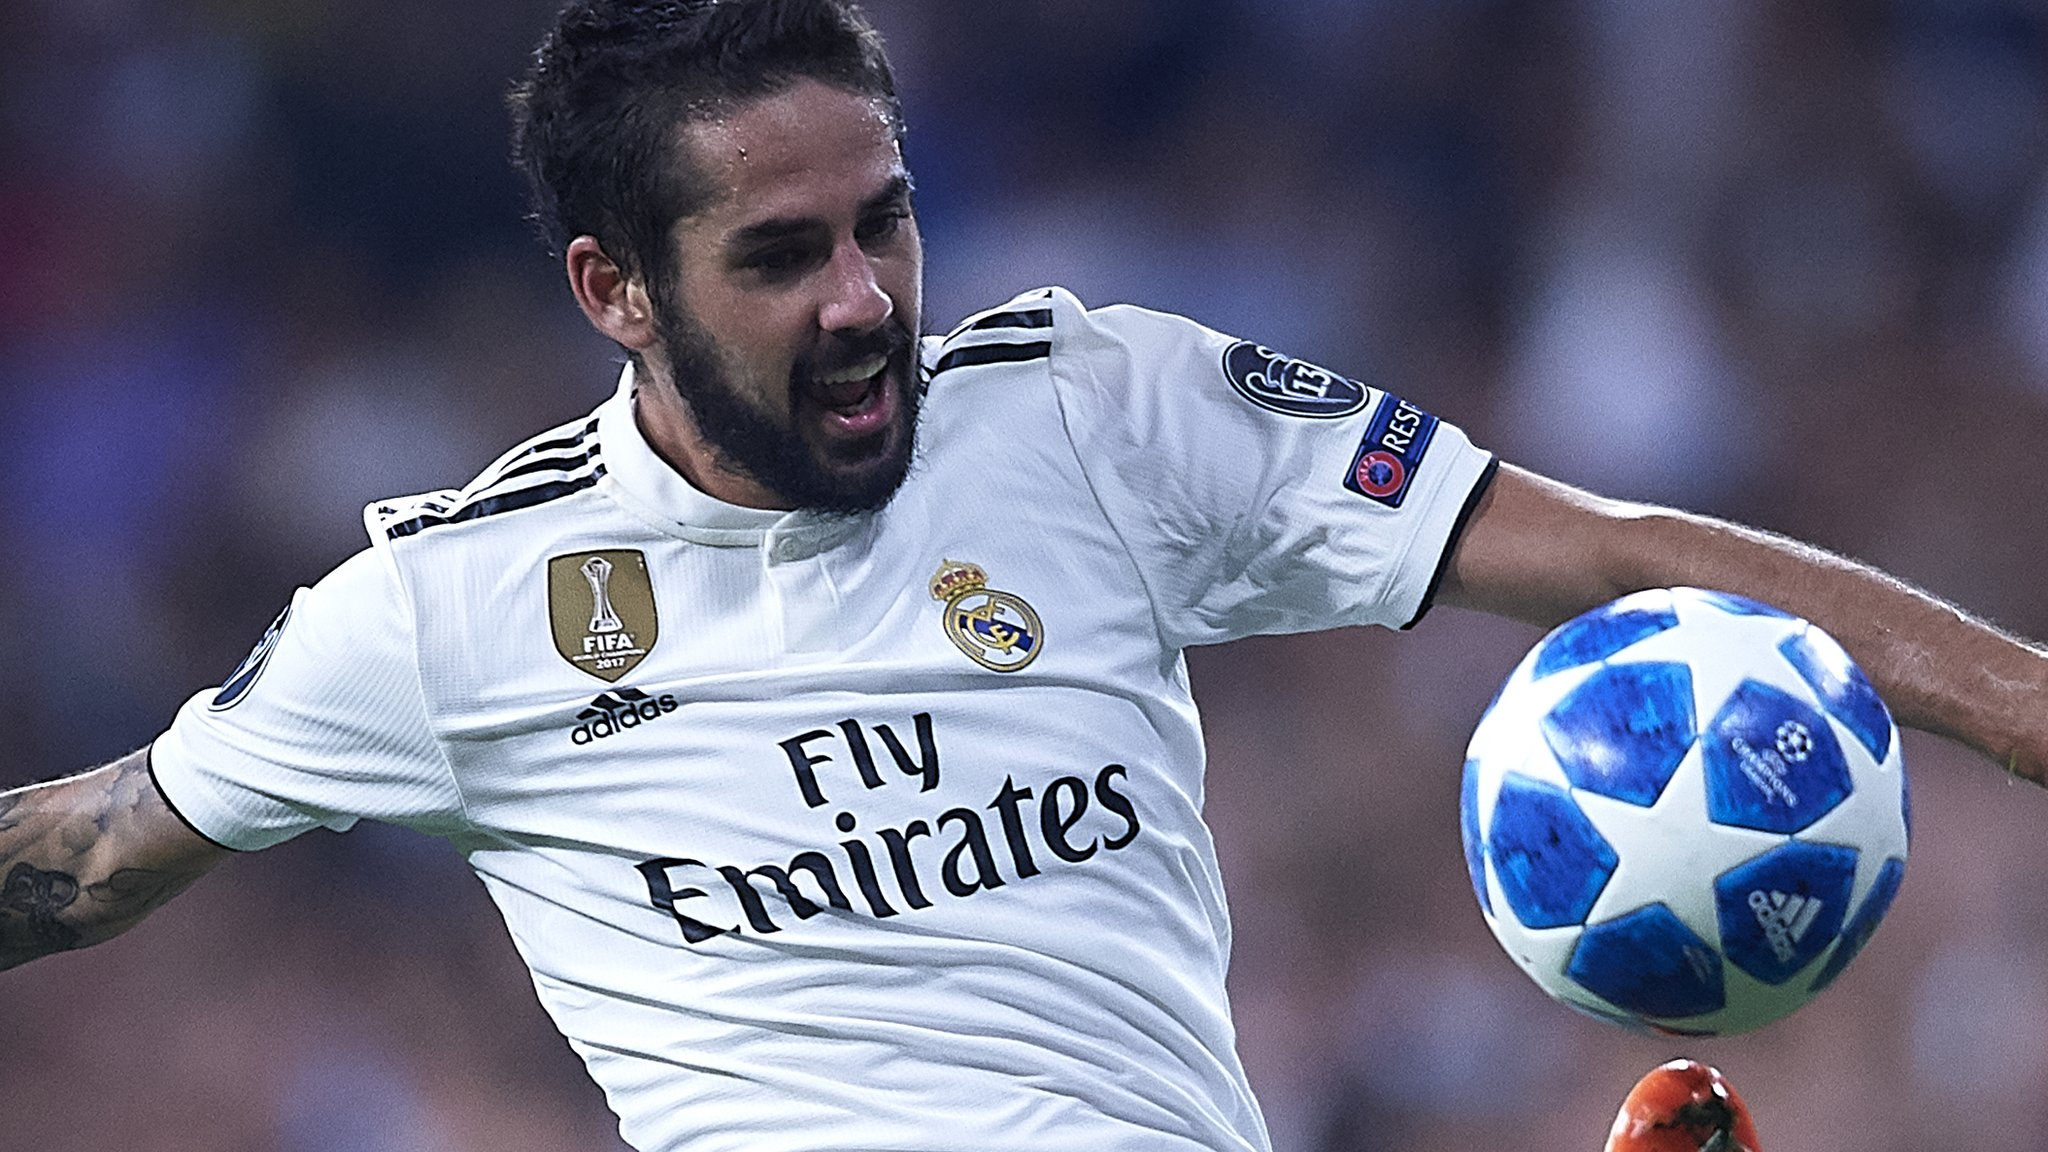 Real Madrid's Isco diagnosed with acute appendicitis